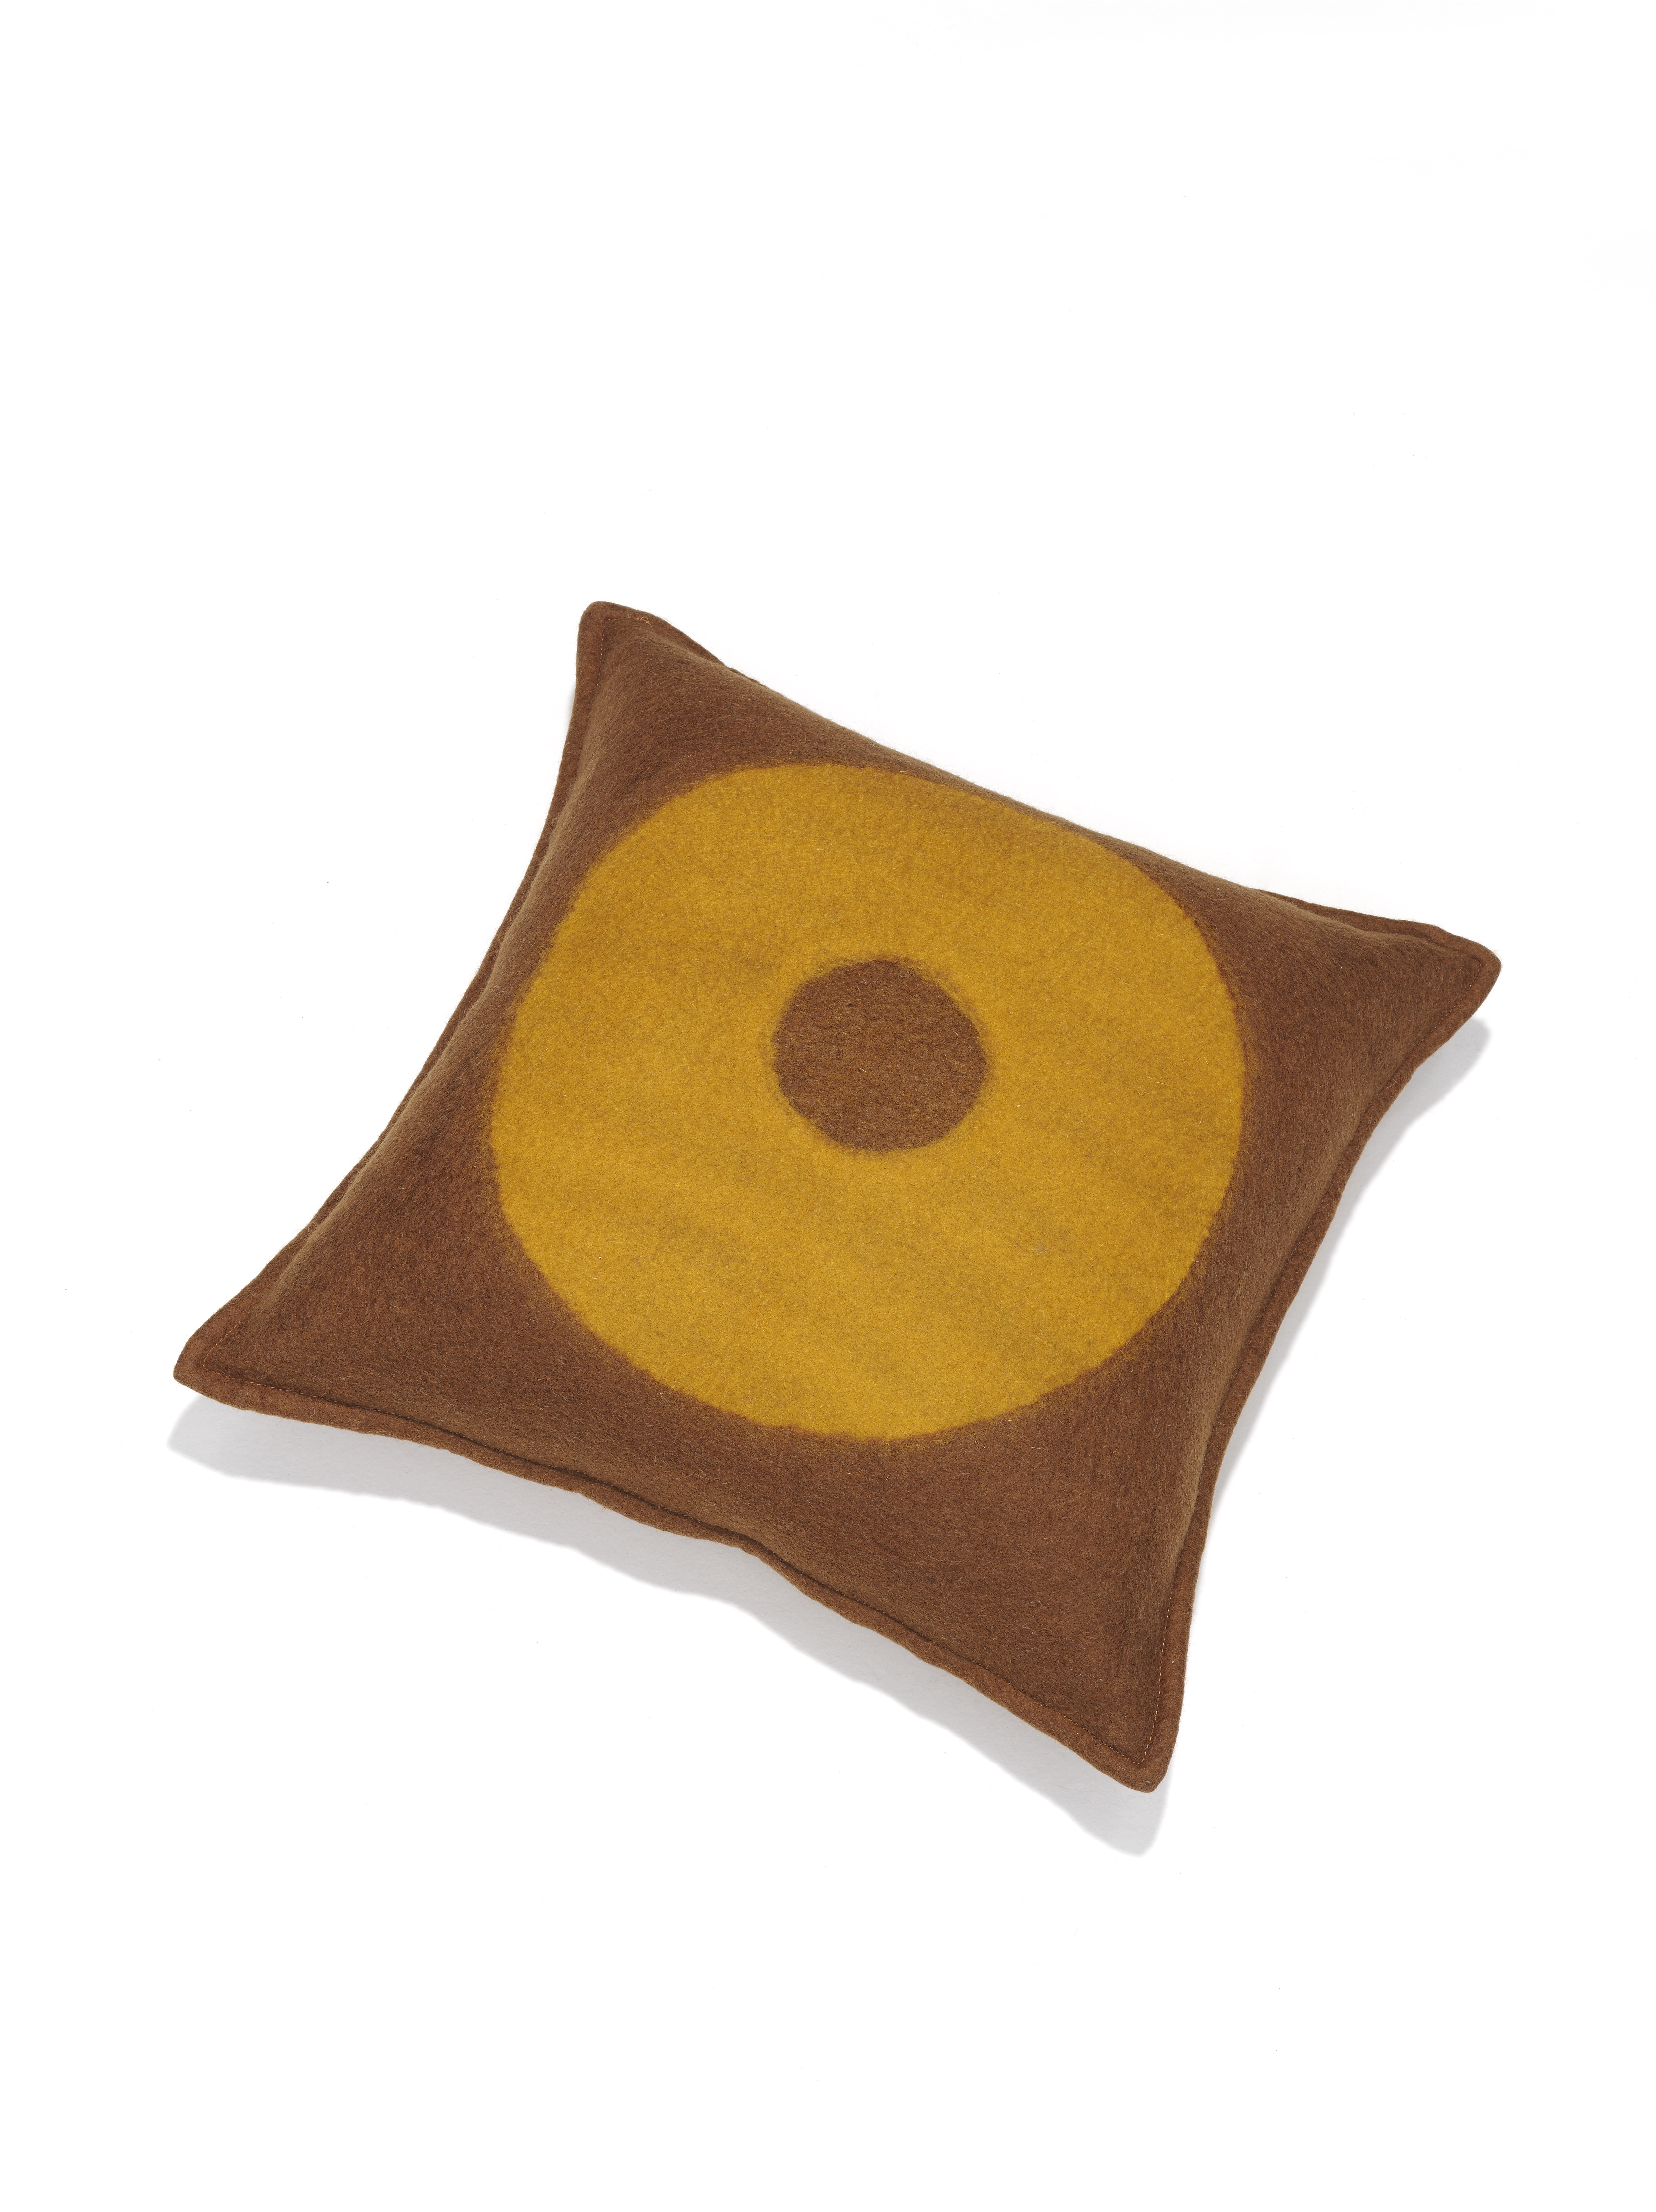 M_and_Otto for Linteloo Glow pillow brown yellow ring